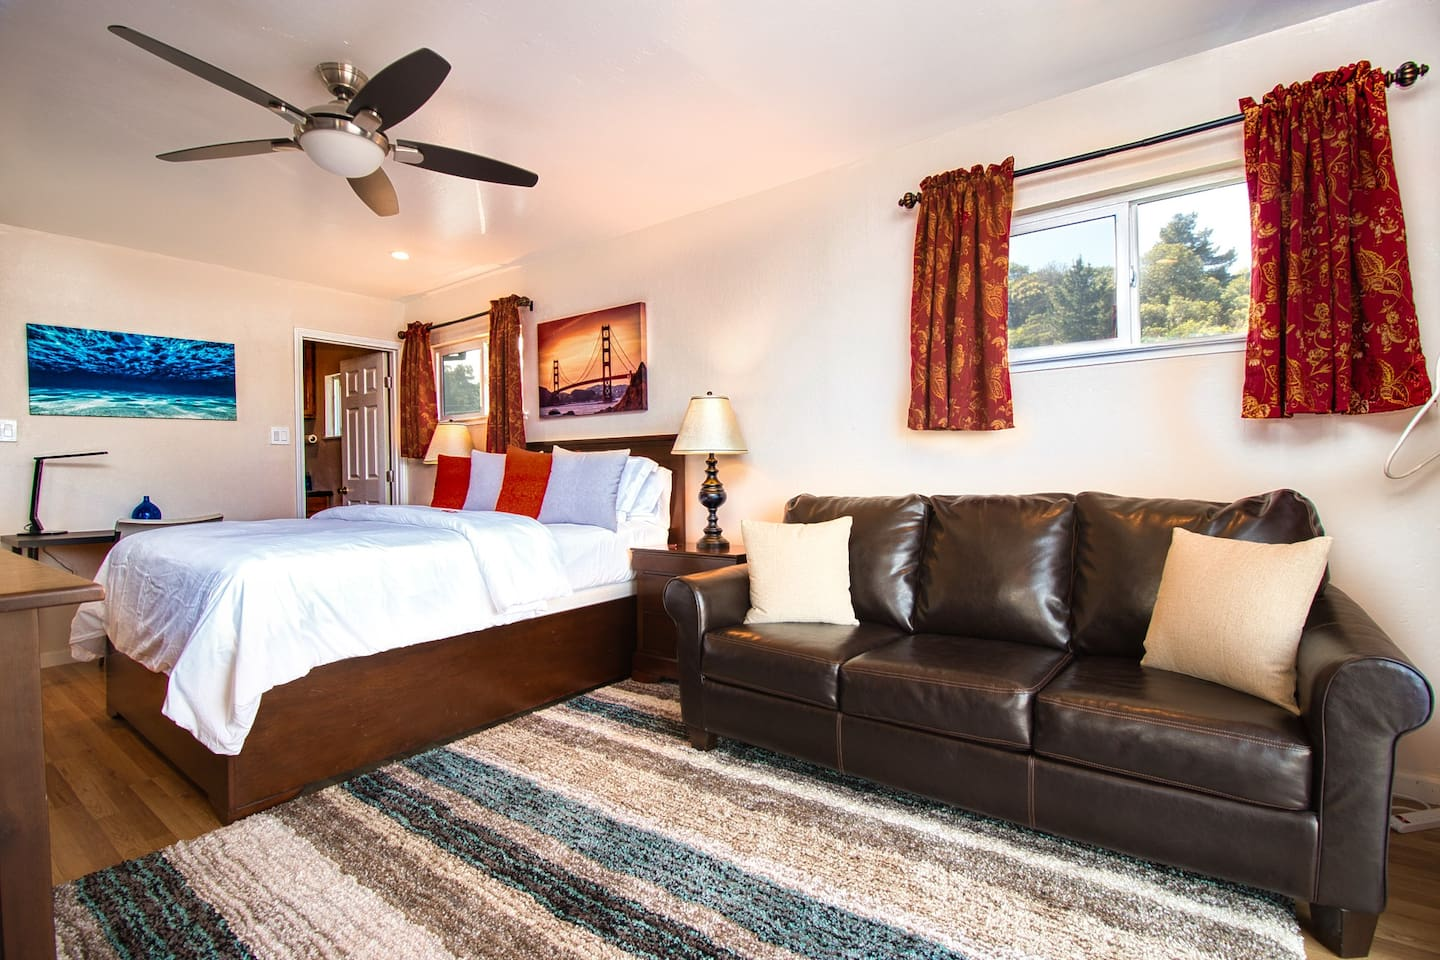 Gorgeous studio with luxurious queen bed, tons of natural light, large sofa bed and colorful art.